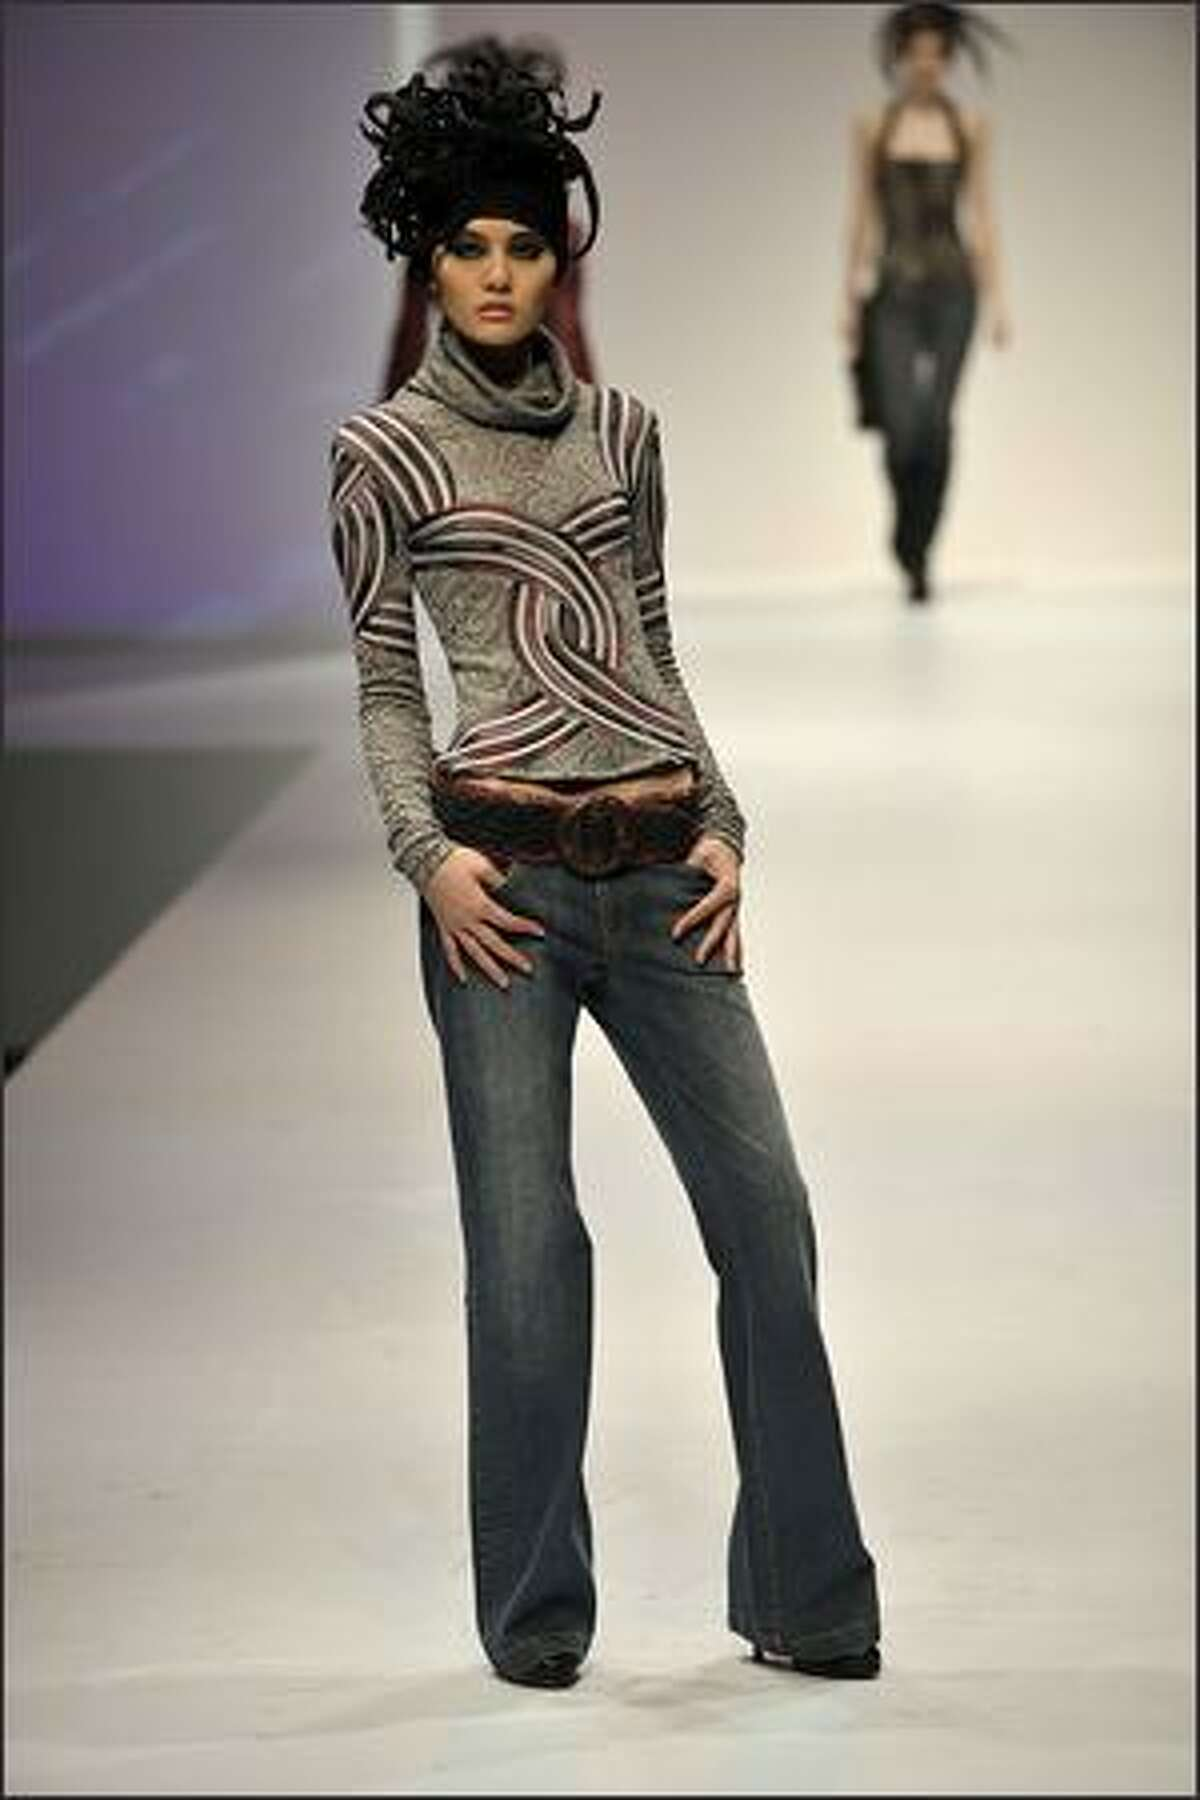 A model showcases designs on the catwalk by Ika on the second day of Hong Kong Fashion Week Autumn/Winter 2008, at Hong Kong Convention & Exhibition Centre (HKCEC) on Tuesday in Hong Kong, China.